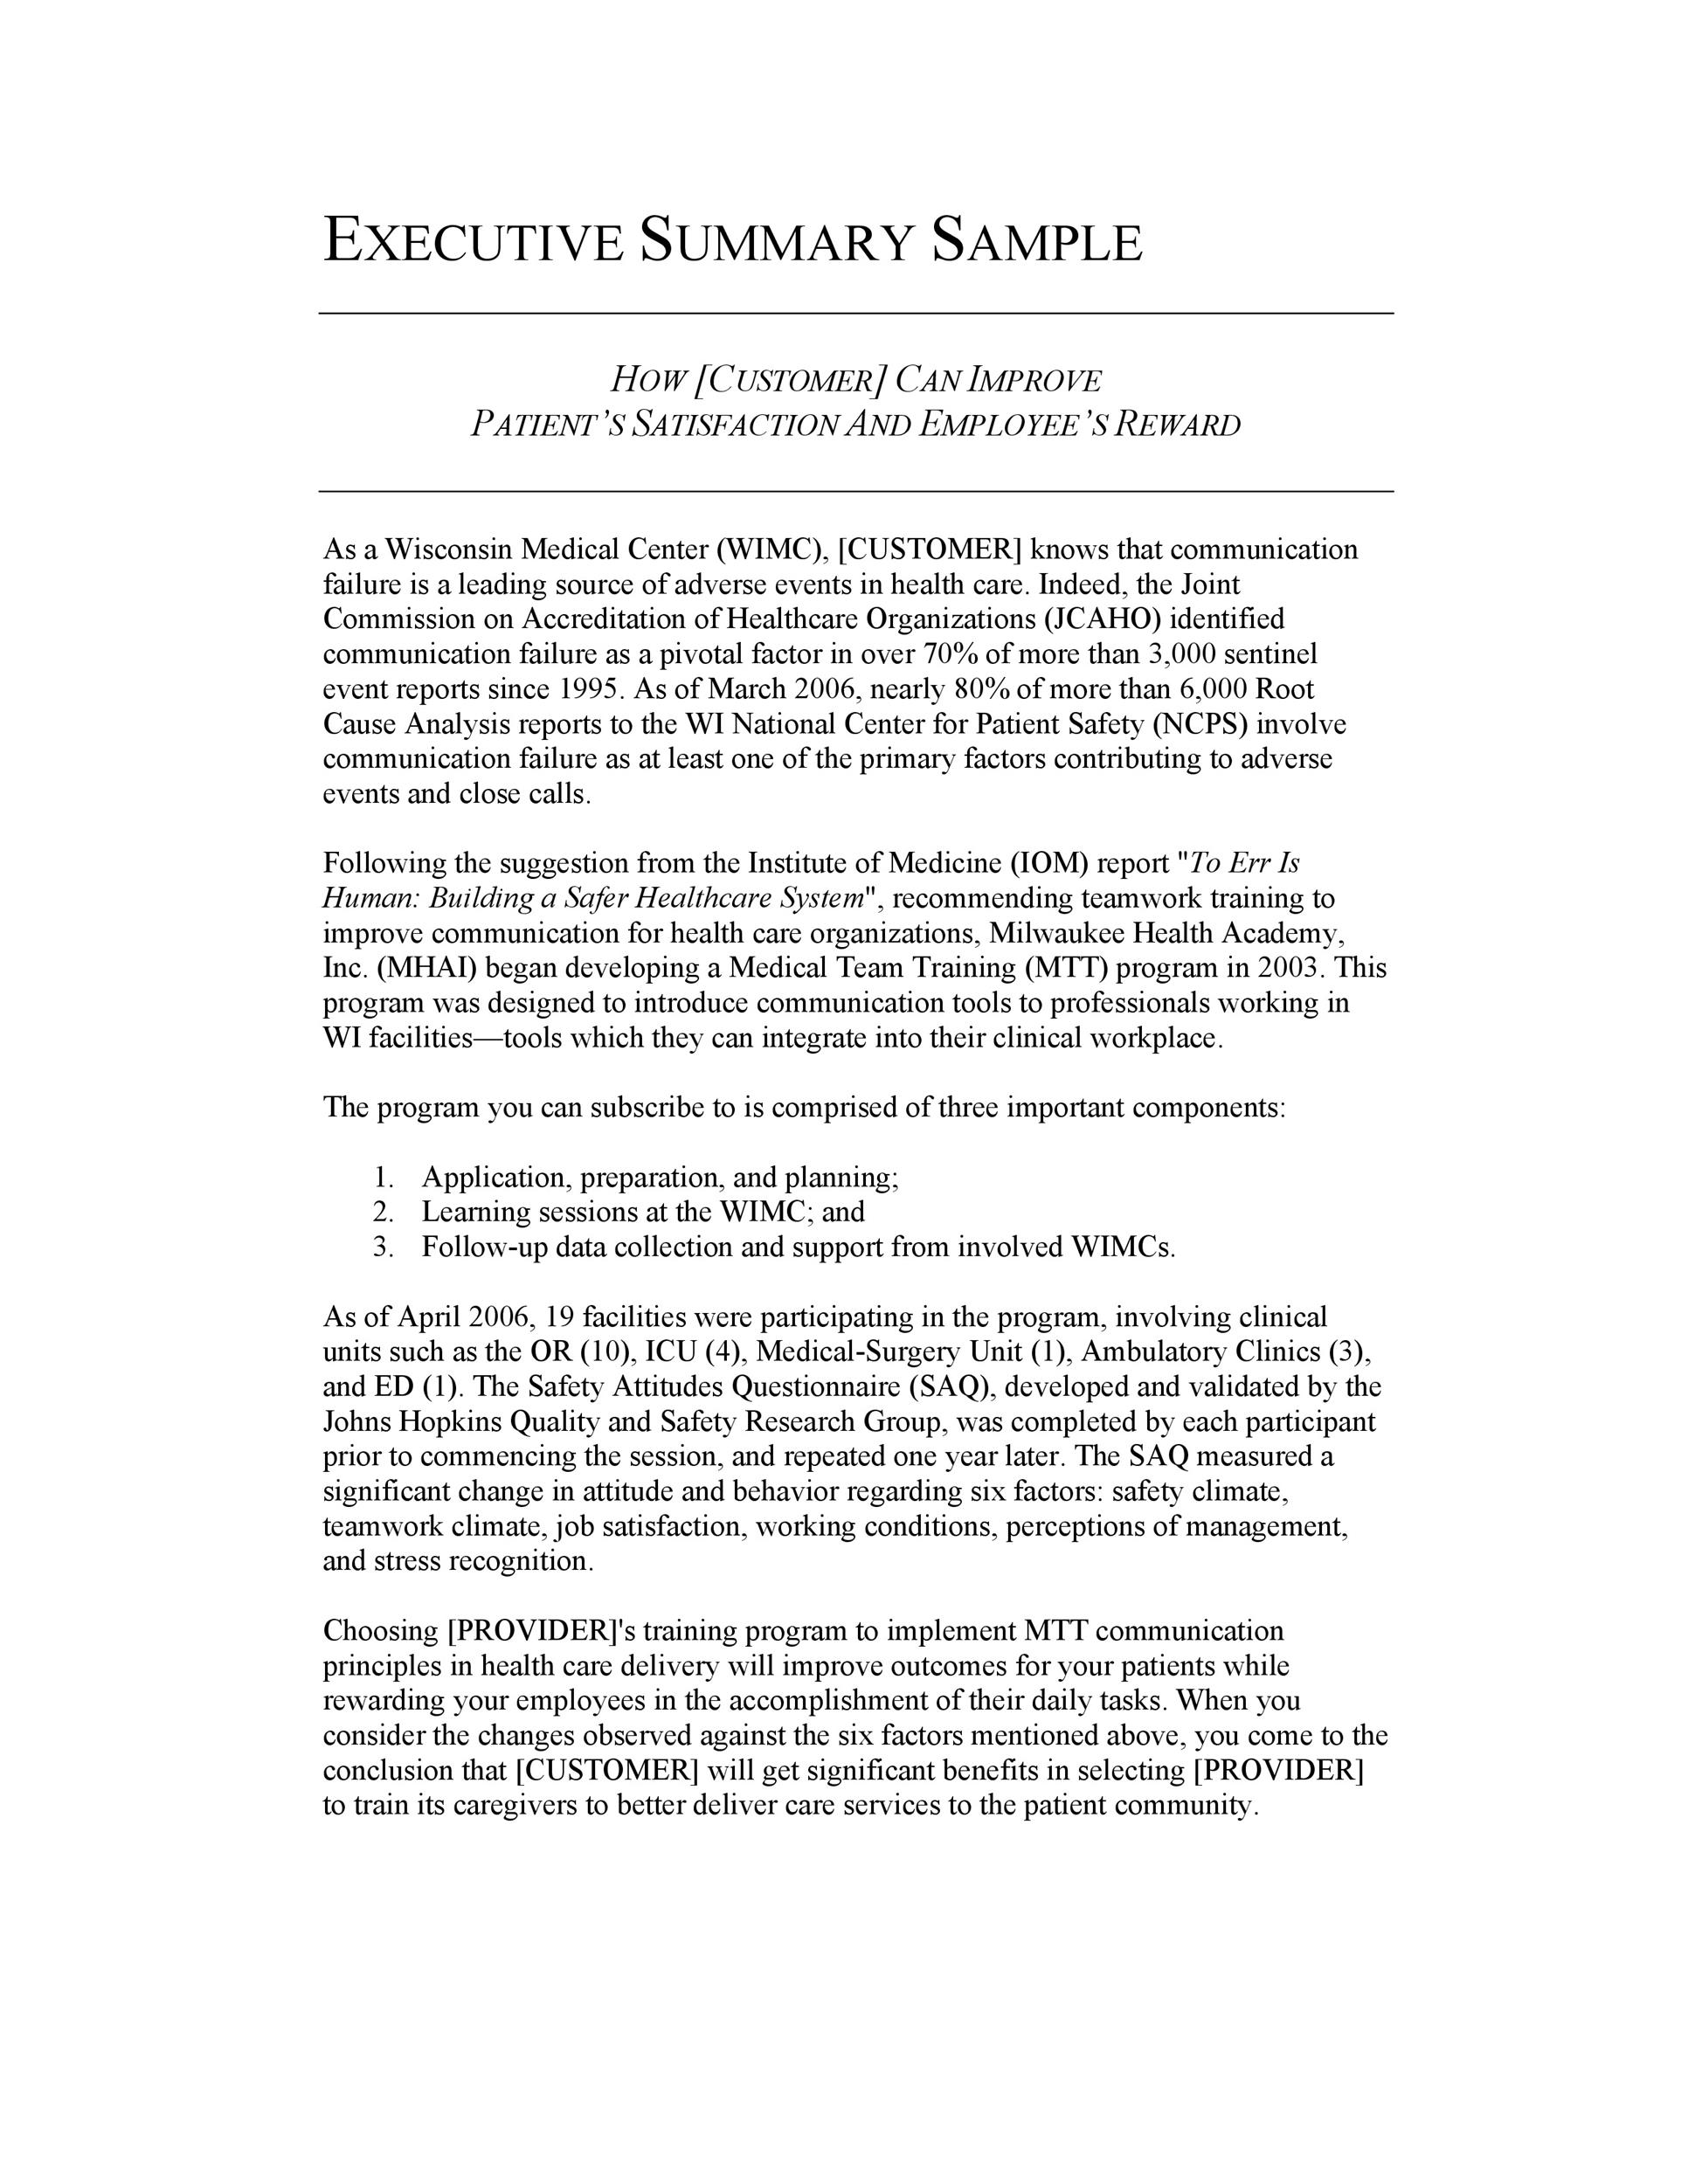 Executive Summary Template 28